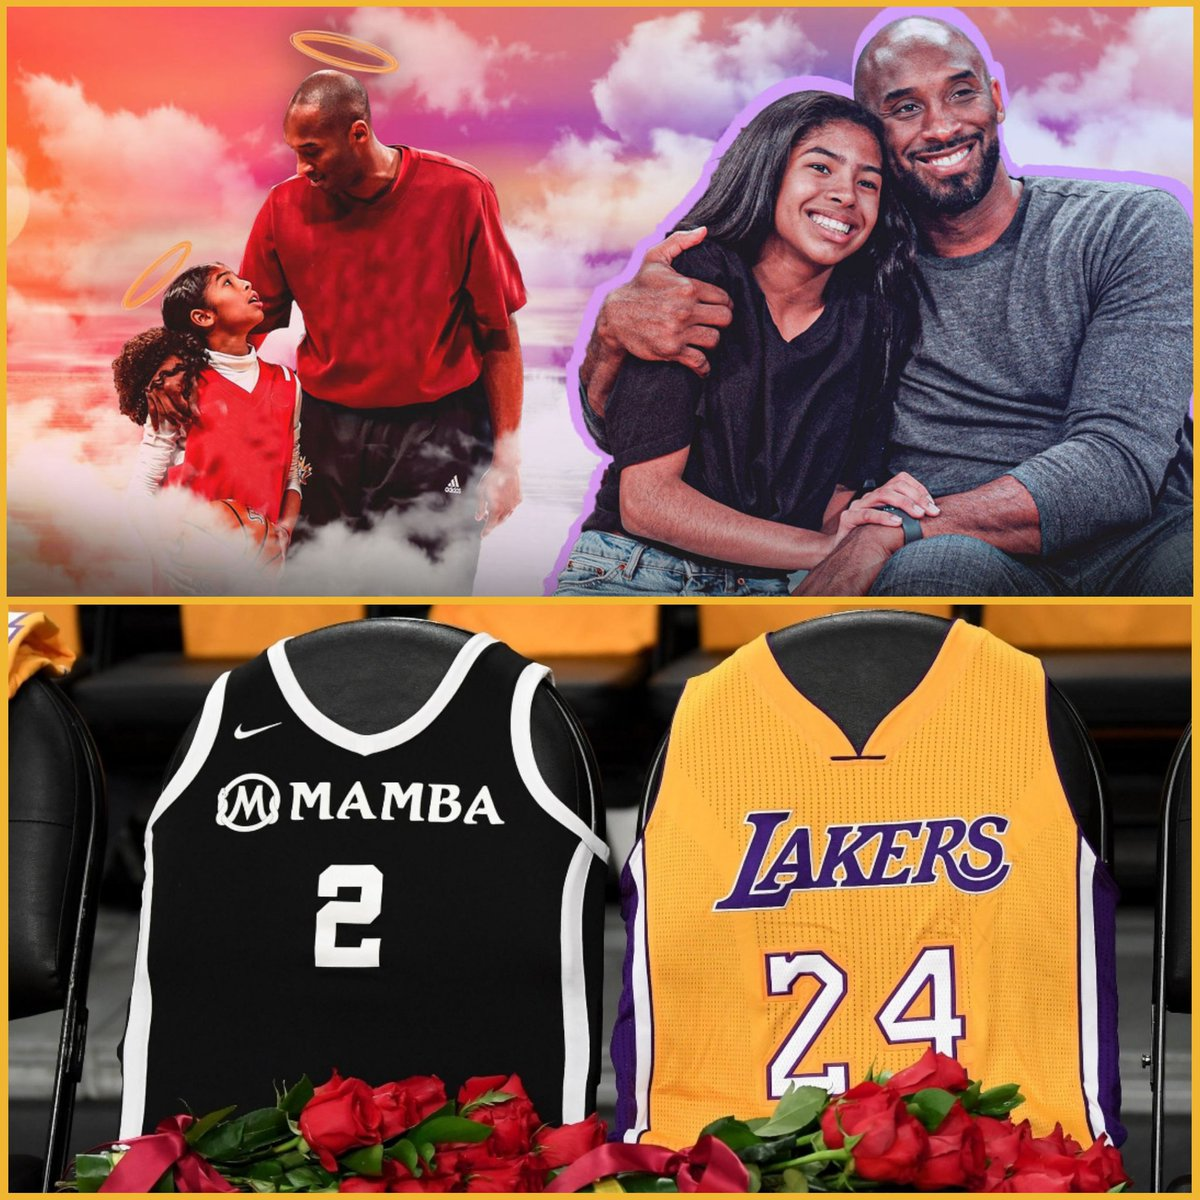 Hate to believe that it's been a year since we lost you. Somehow, today hurts just as much as it did 365 days ago. It hasn't been the same w/o you Mamba 🐍 We miss you and Gigi every day 🥺   Rest in Peace #Kobe #Gigi and everyone who perished on 1/26/2020 🙏🏼🕊 #MambaForever